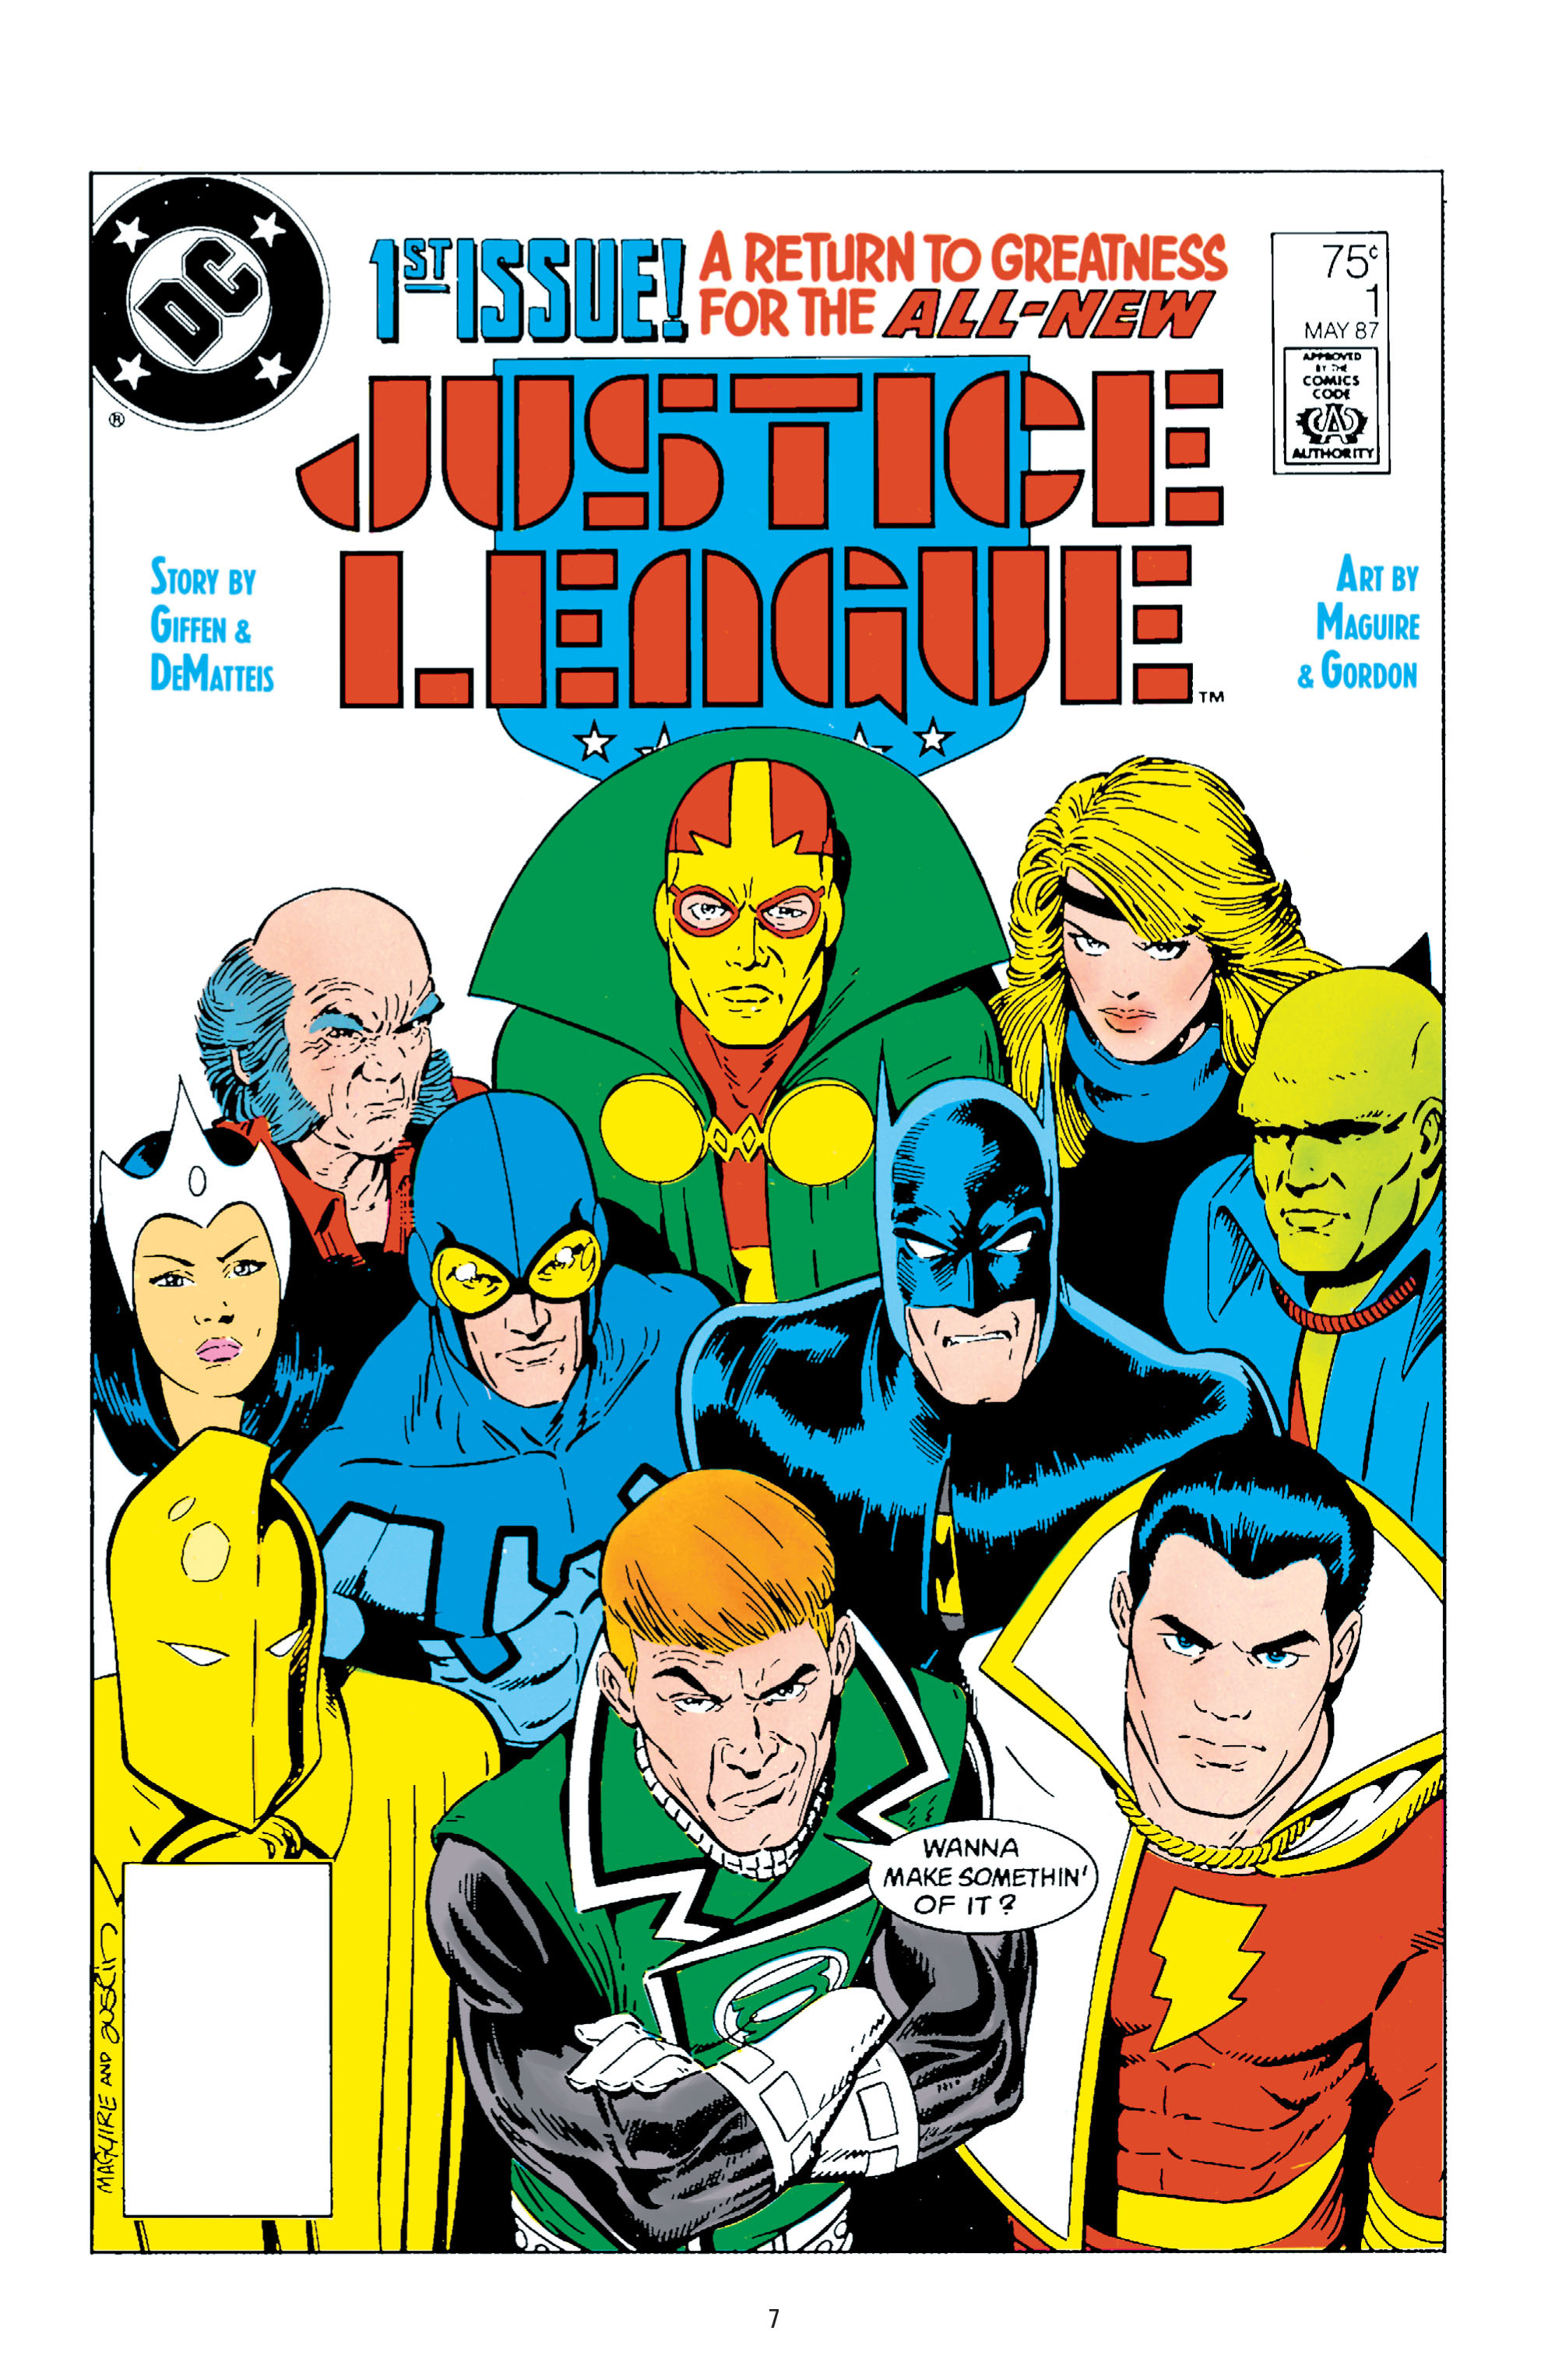 Justice League (Giffen/DeMatteis)